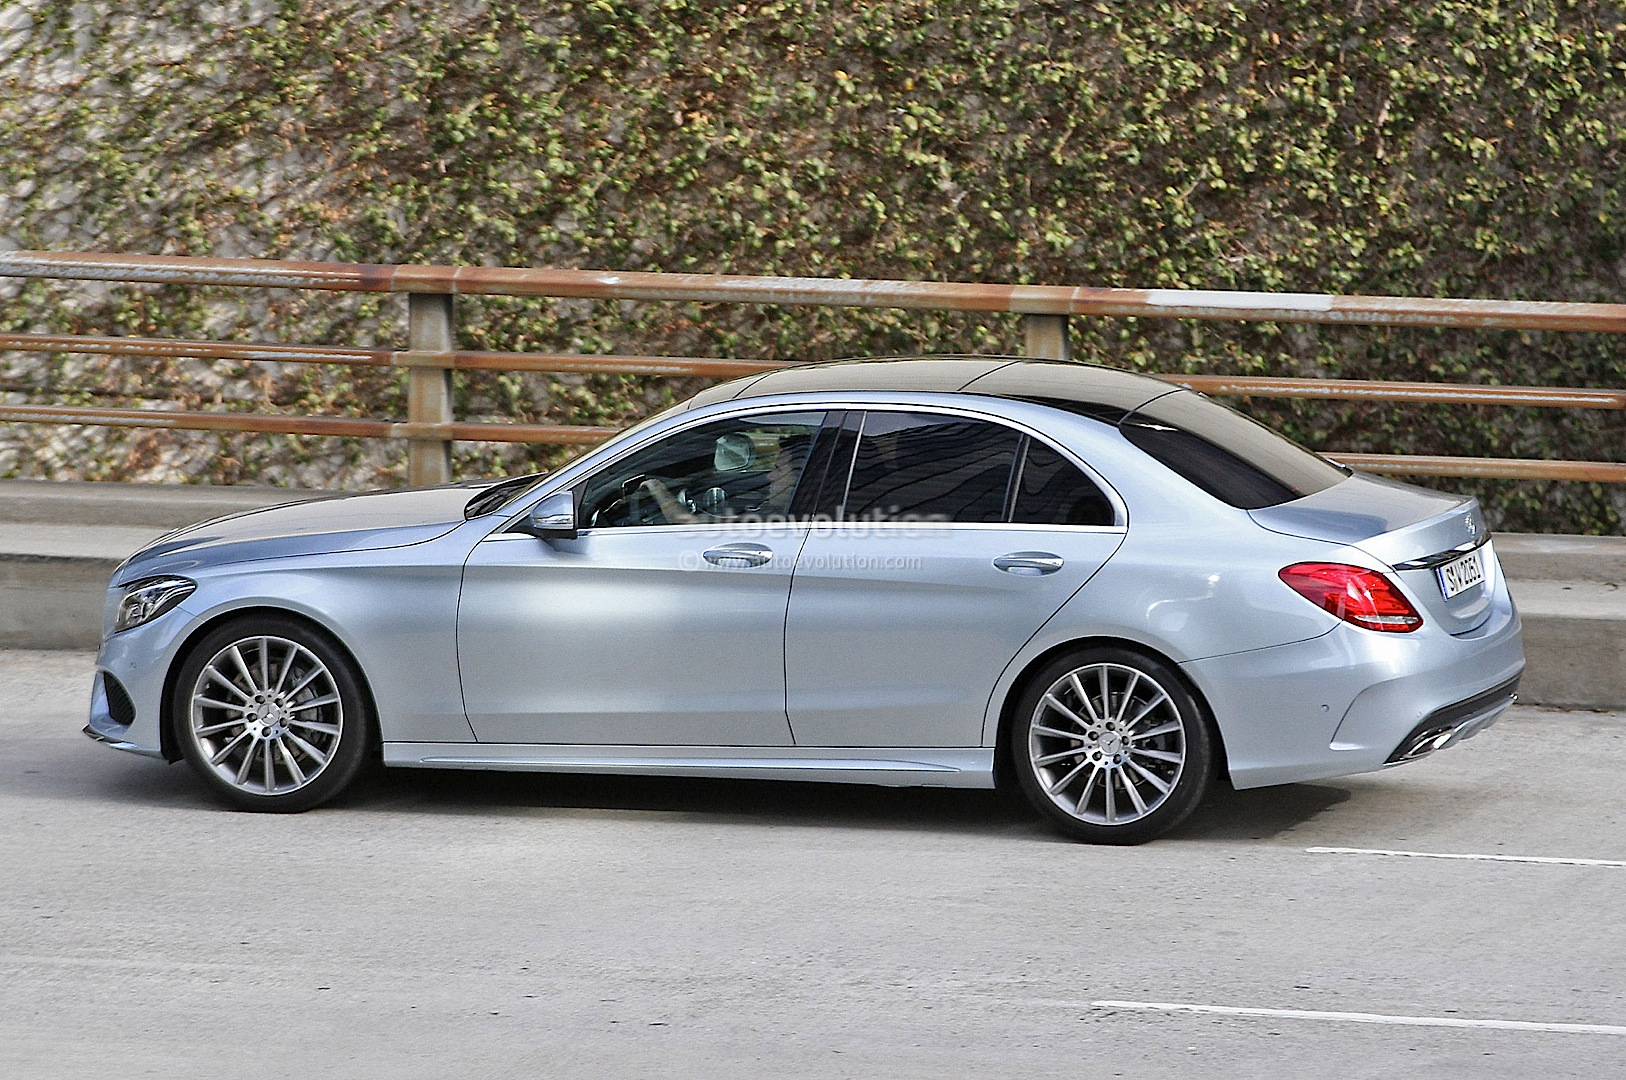 2015 Mercedes Benz C 220 Bluetec W205 Vs 2014 C 220 Cdi